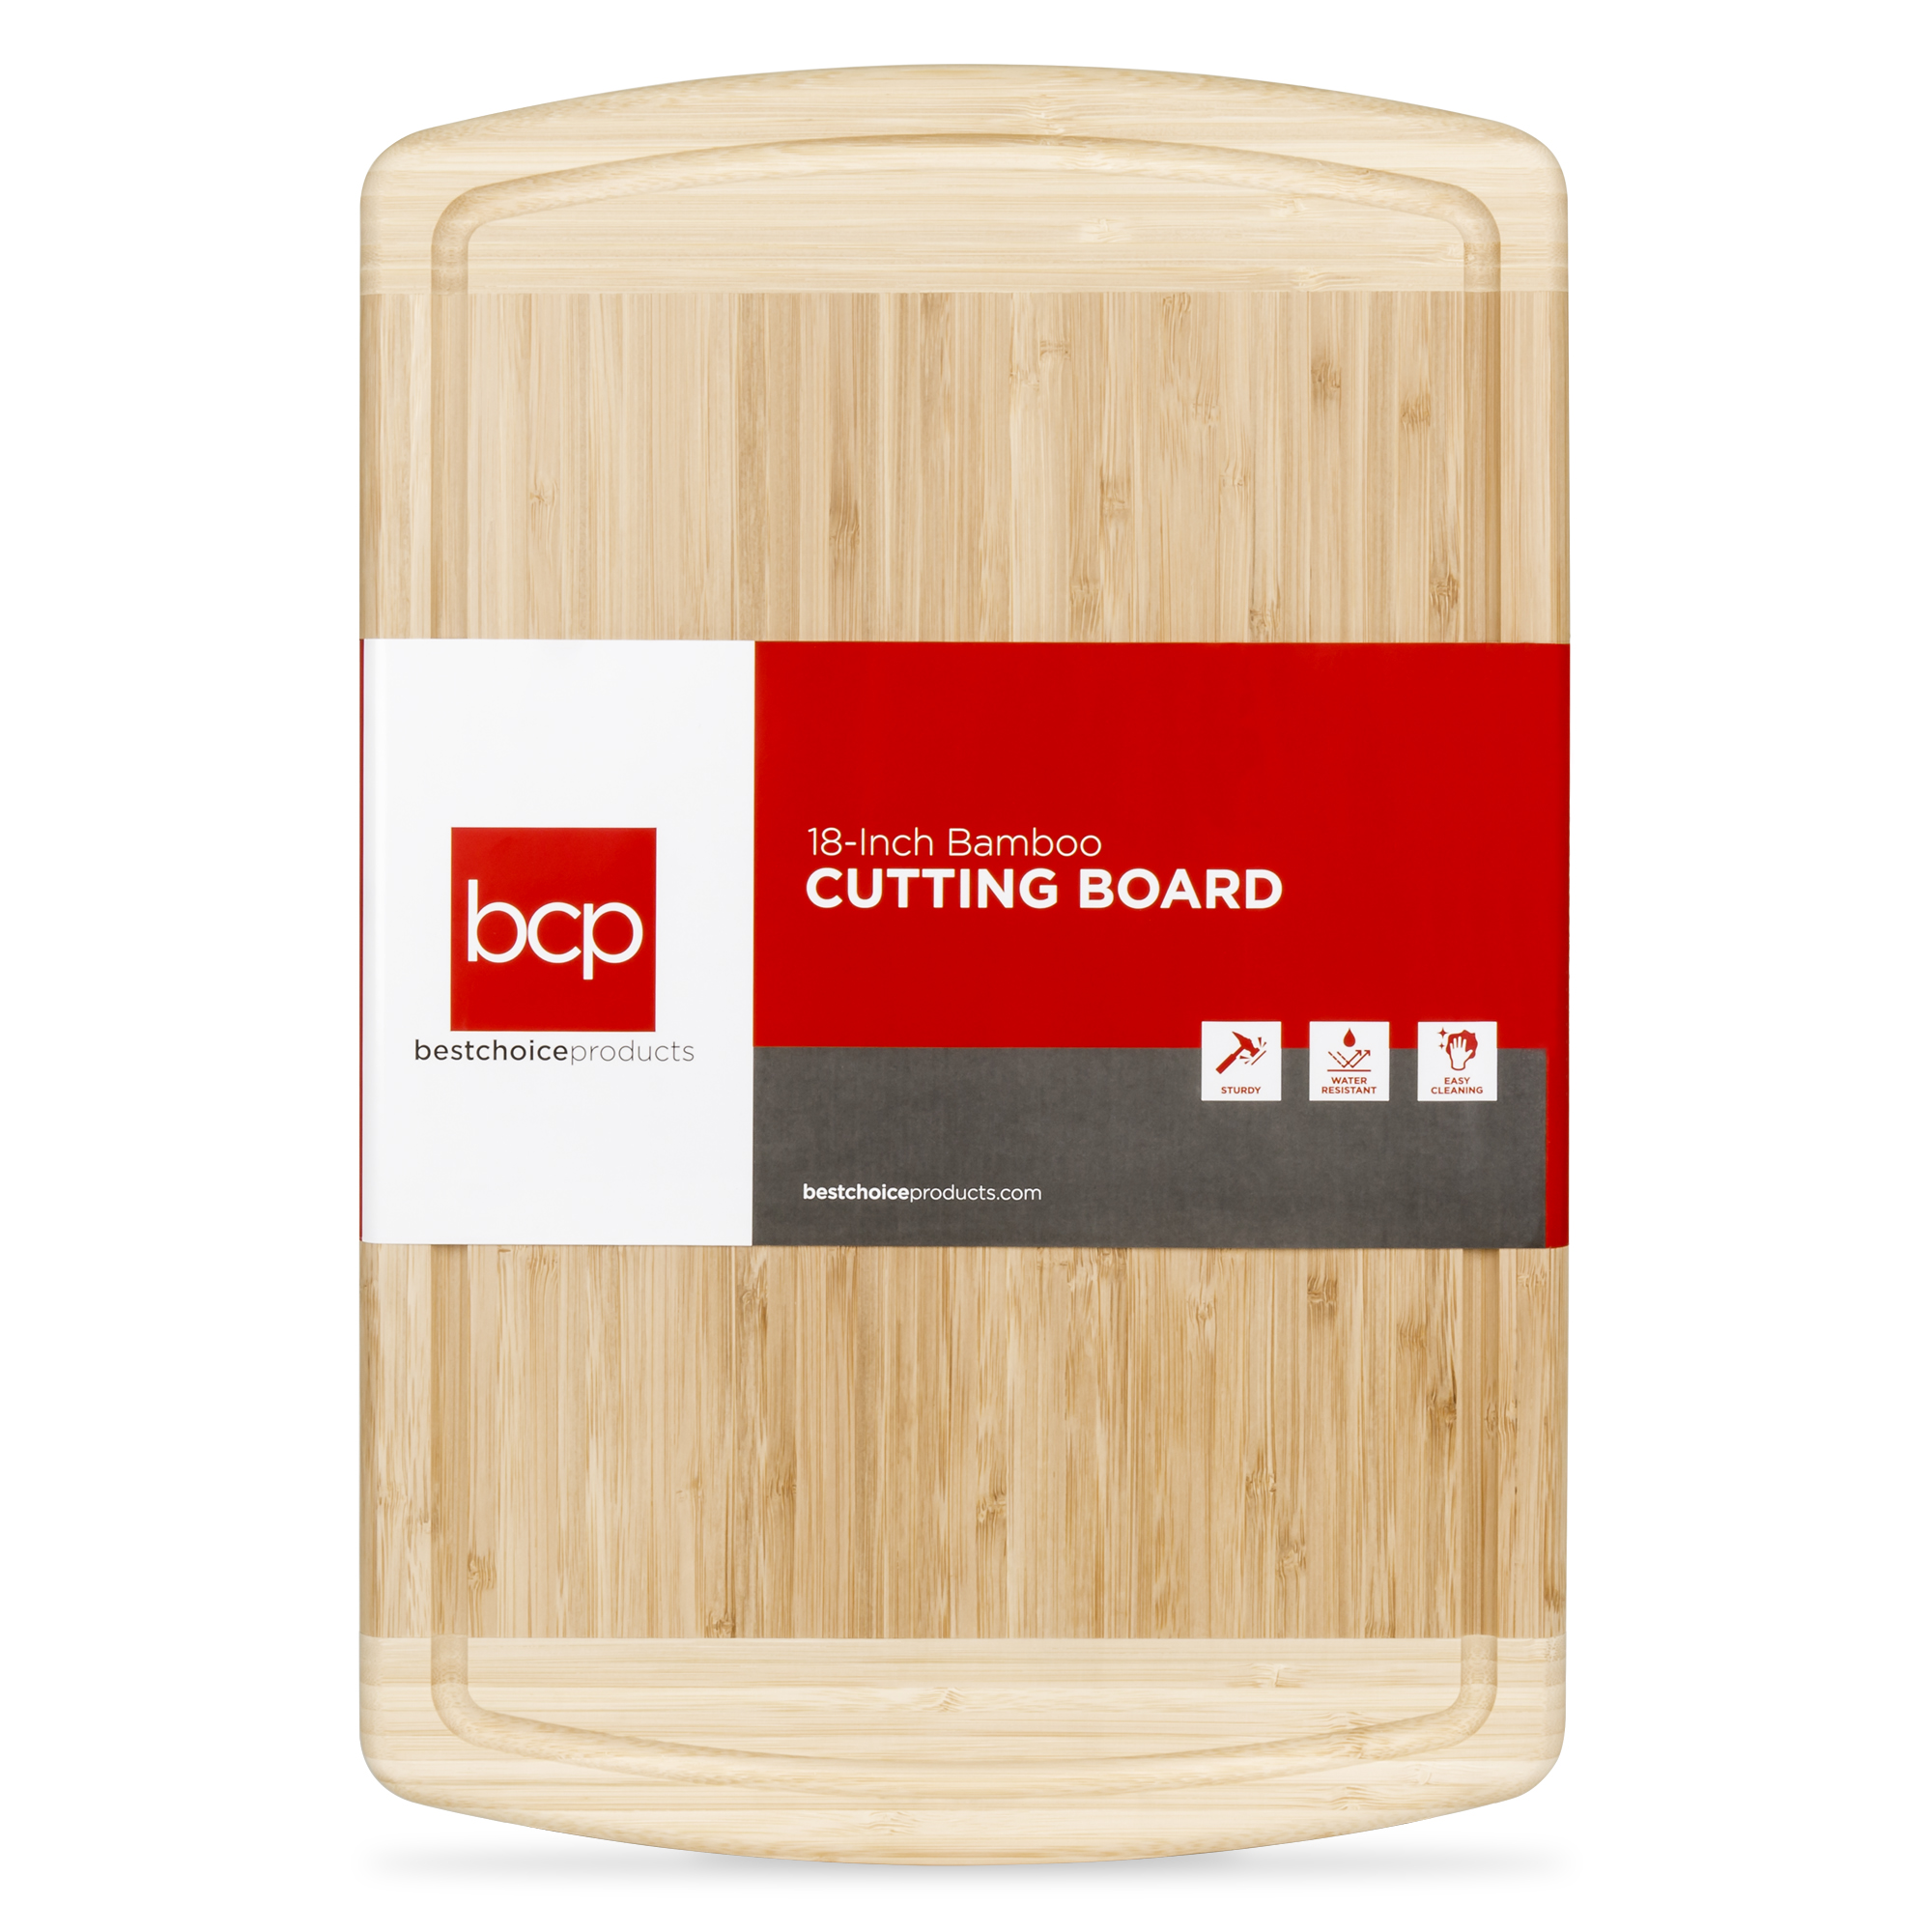 Best Choice Products 18x12in Kitchen Bamboo Butcher Block Cutting Board Tray for Chopping, Serving w/ Juice Drip Groove